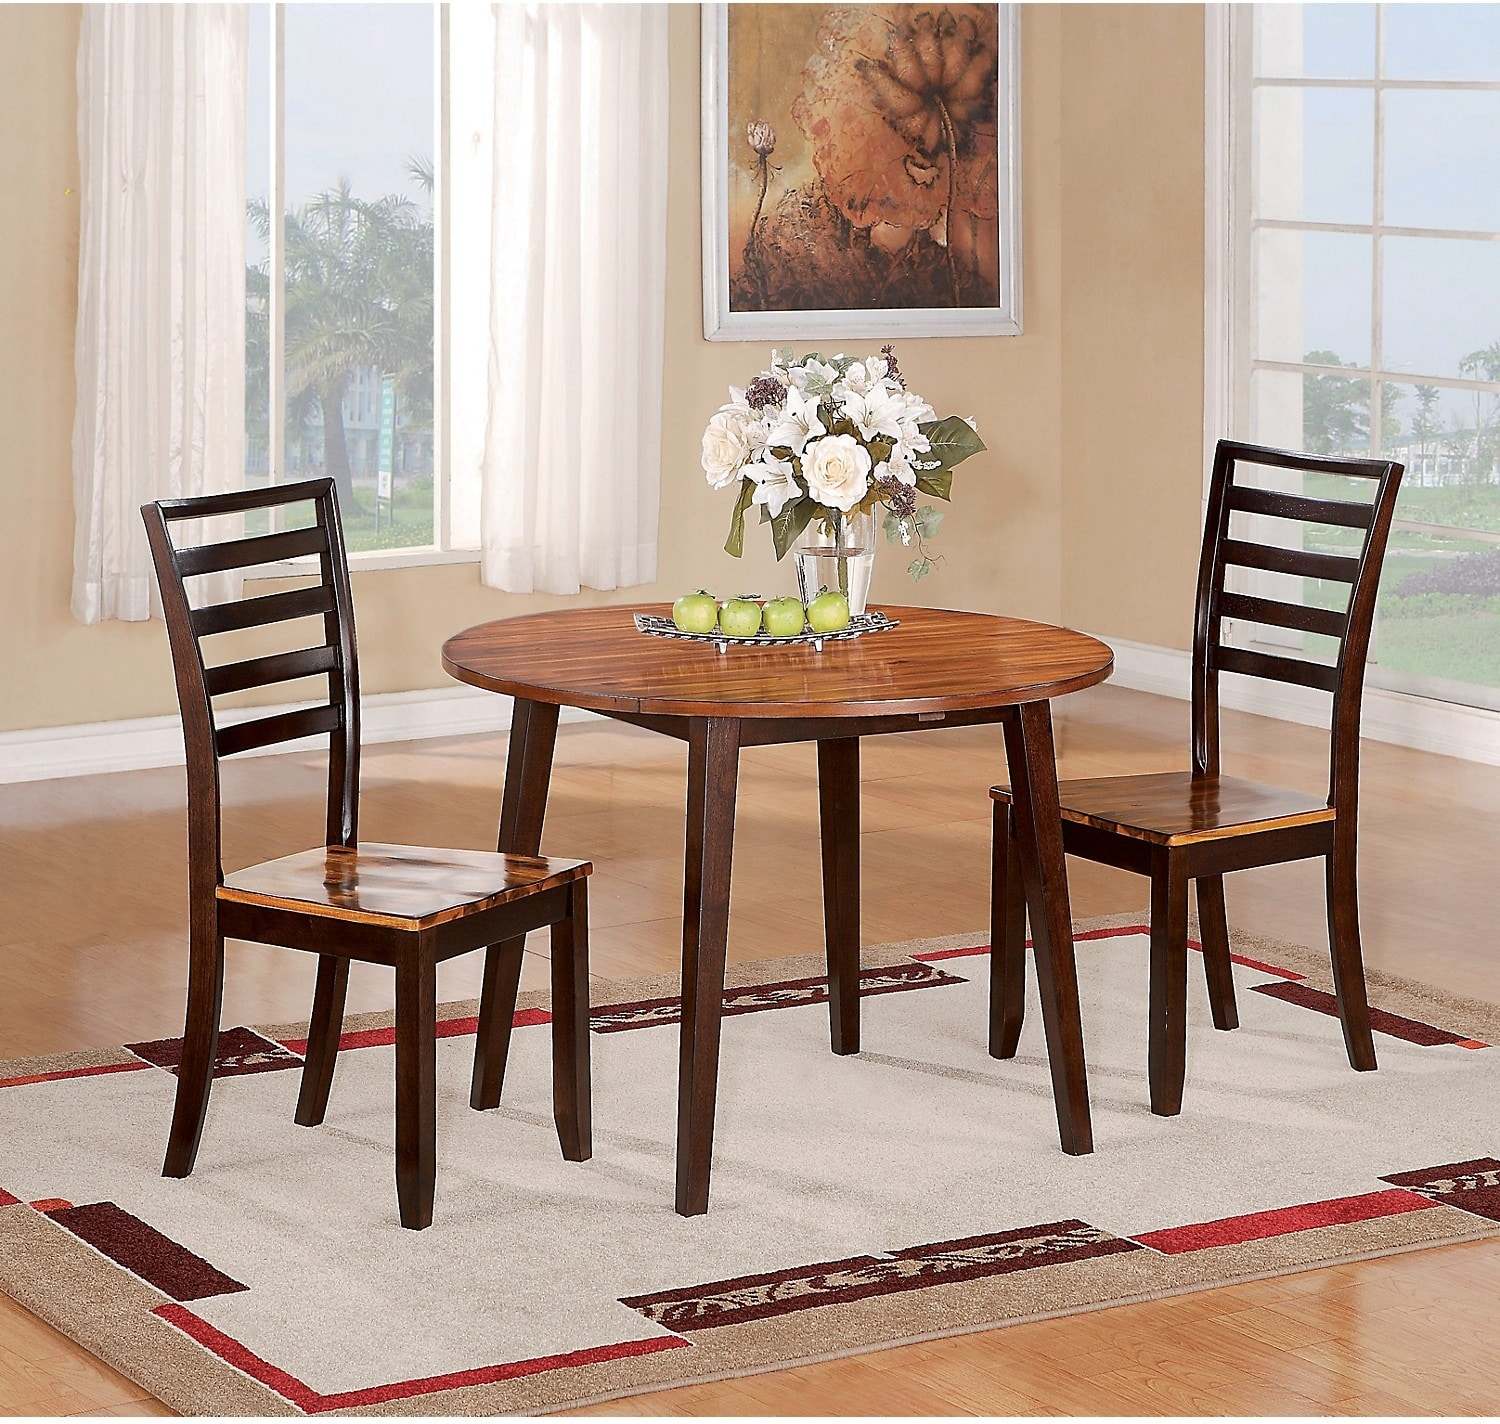 Dining Room Furniture - Zara 3-Piece Dining Package with Round Drop-Leaf Table